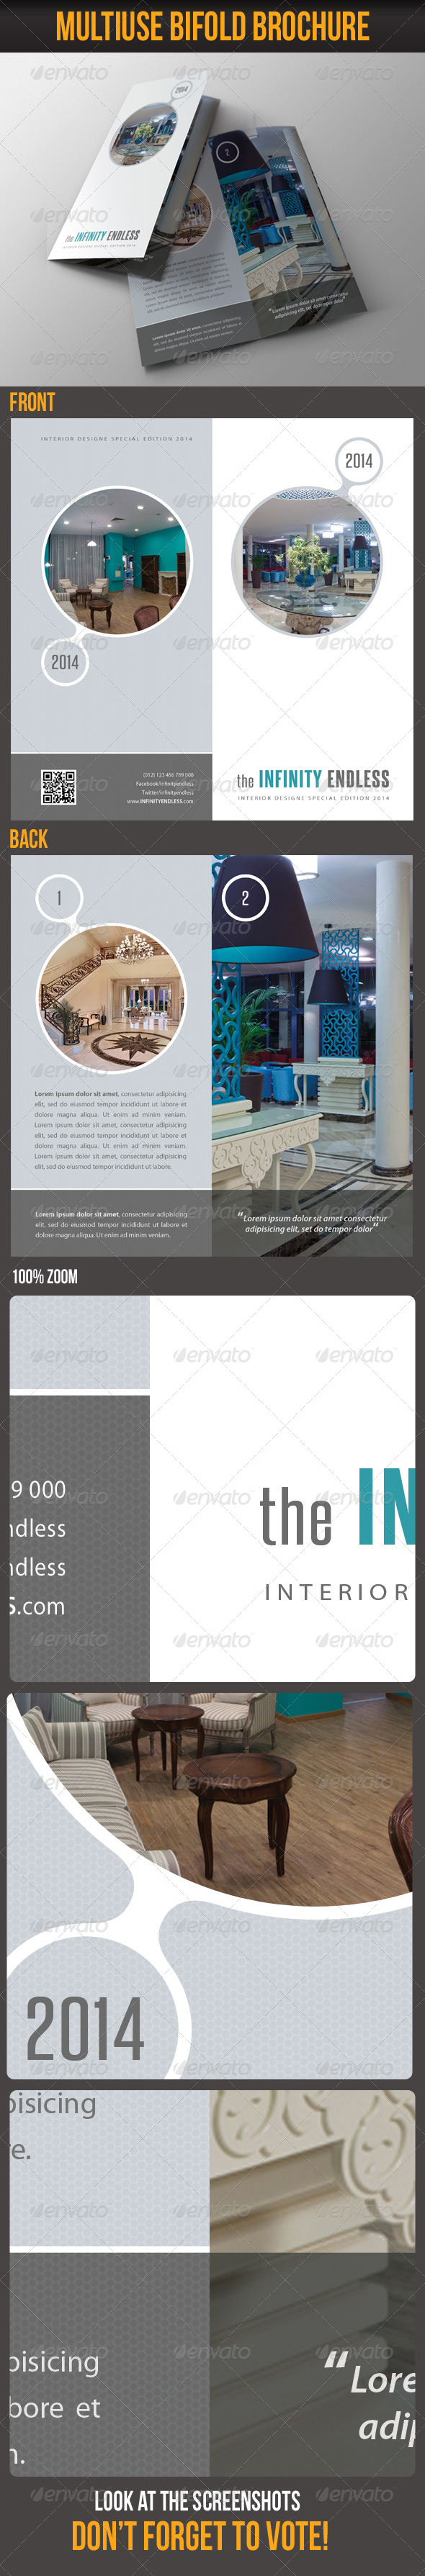 GraphicRiver Multiuse Bifold Brochure 15 6098193